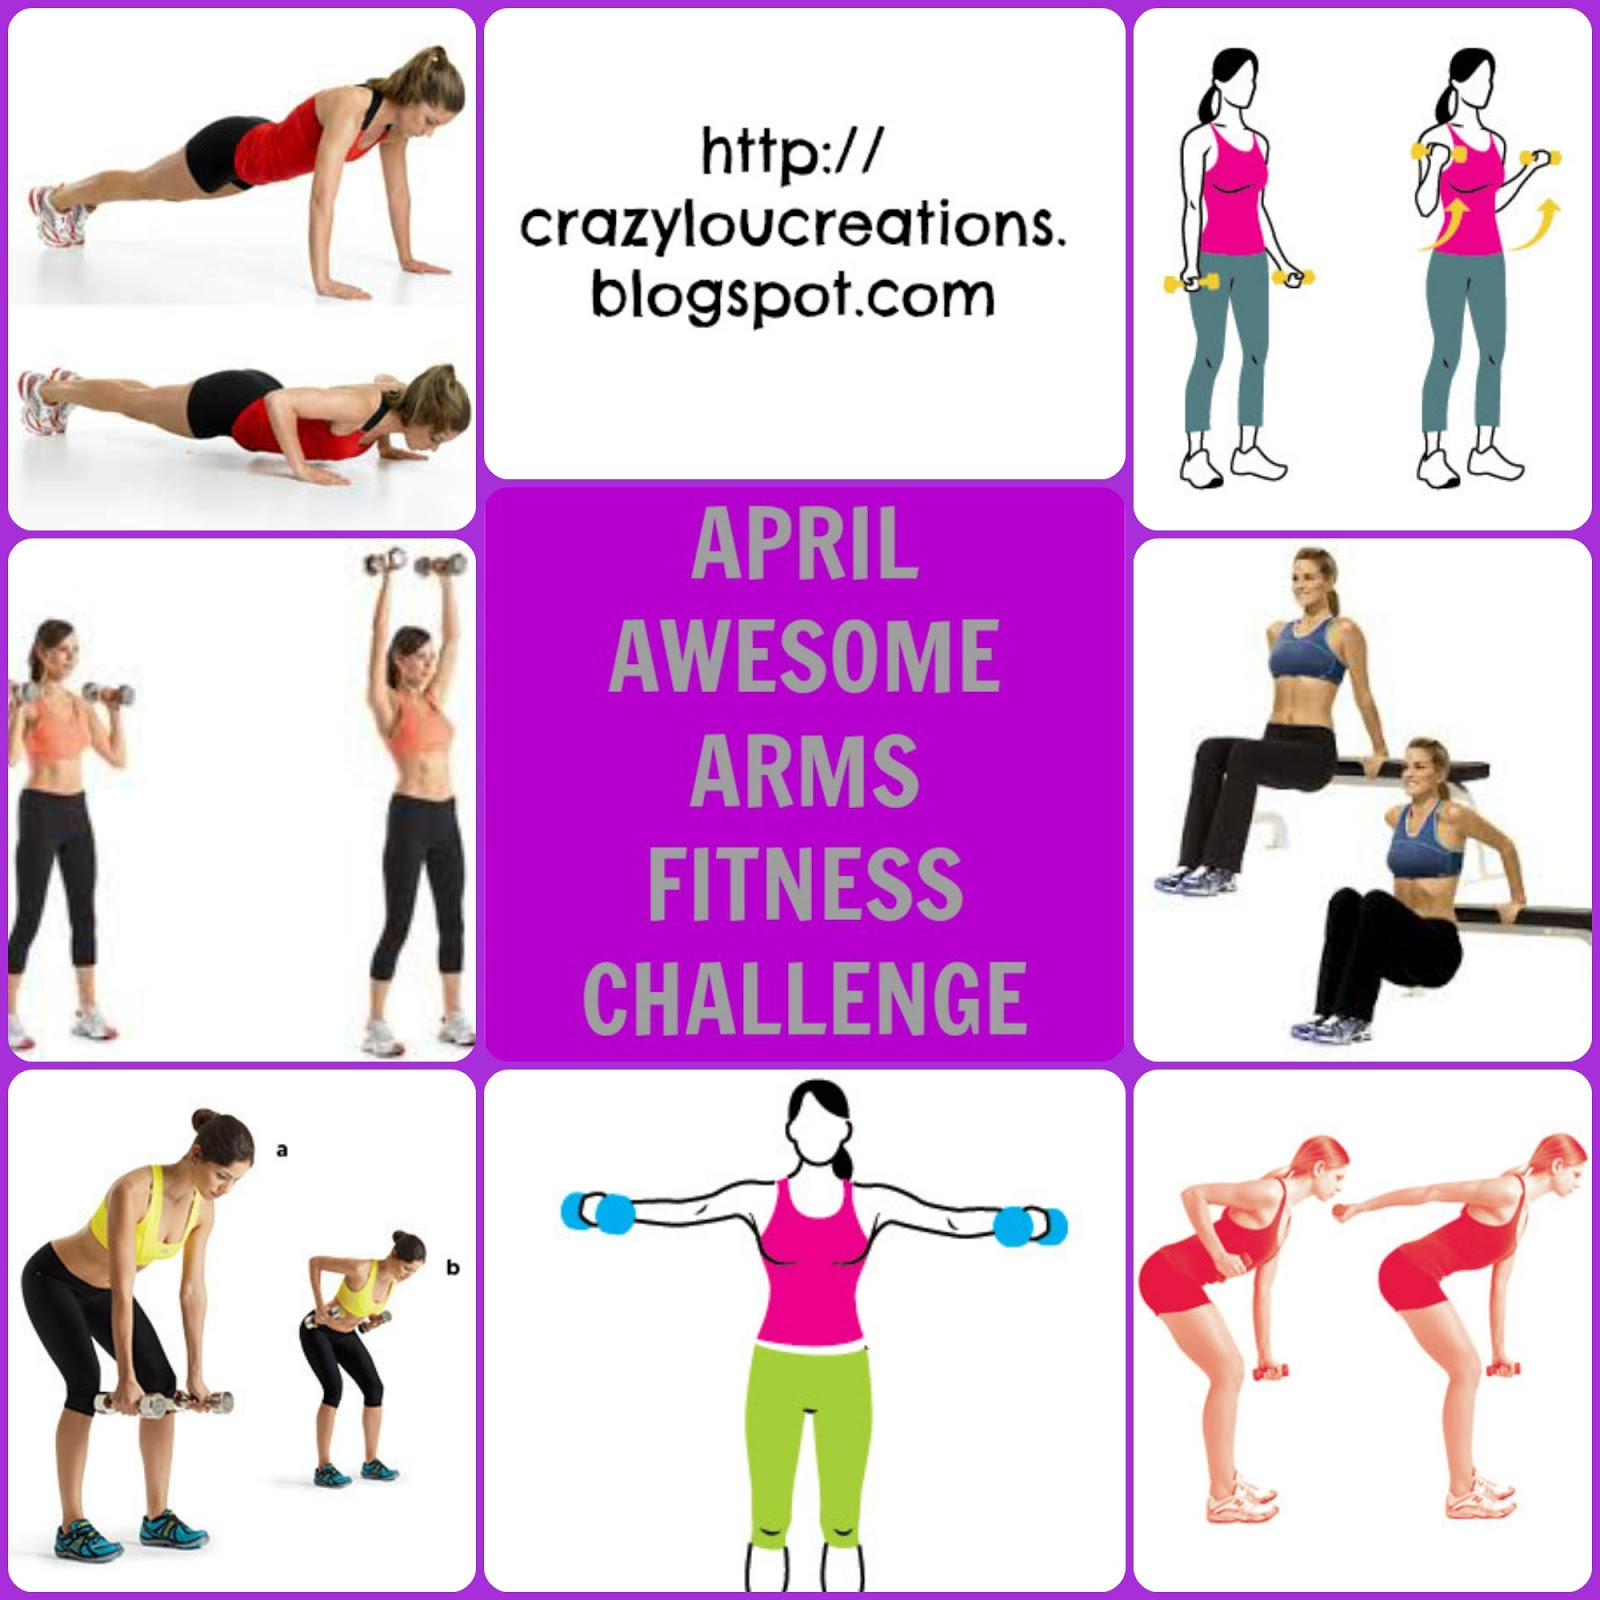 Awesome April Arms Fitness Challege at crazyloucreations.blogspot.com